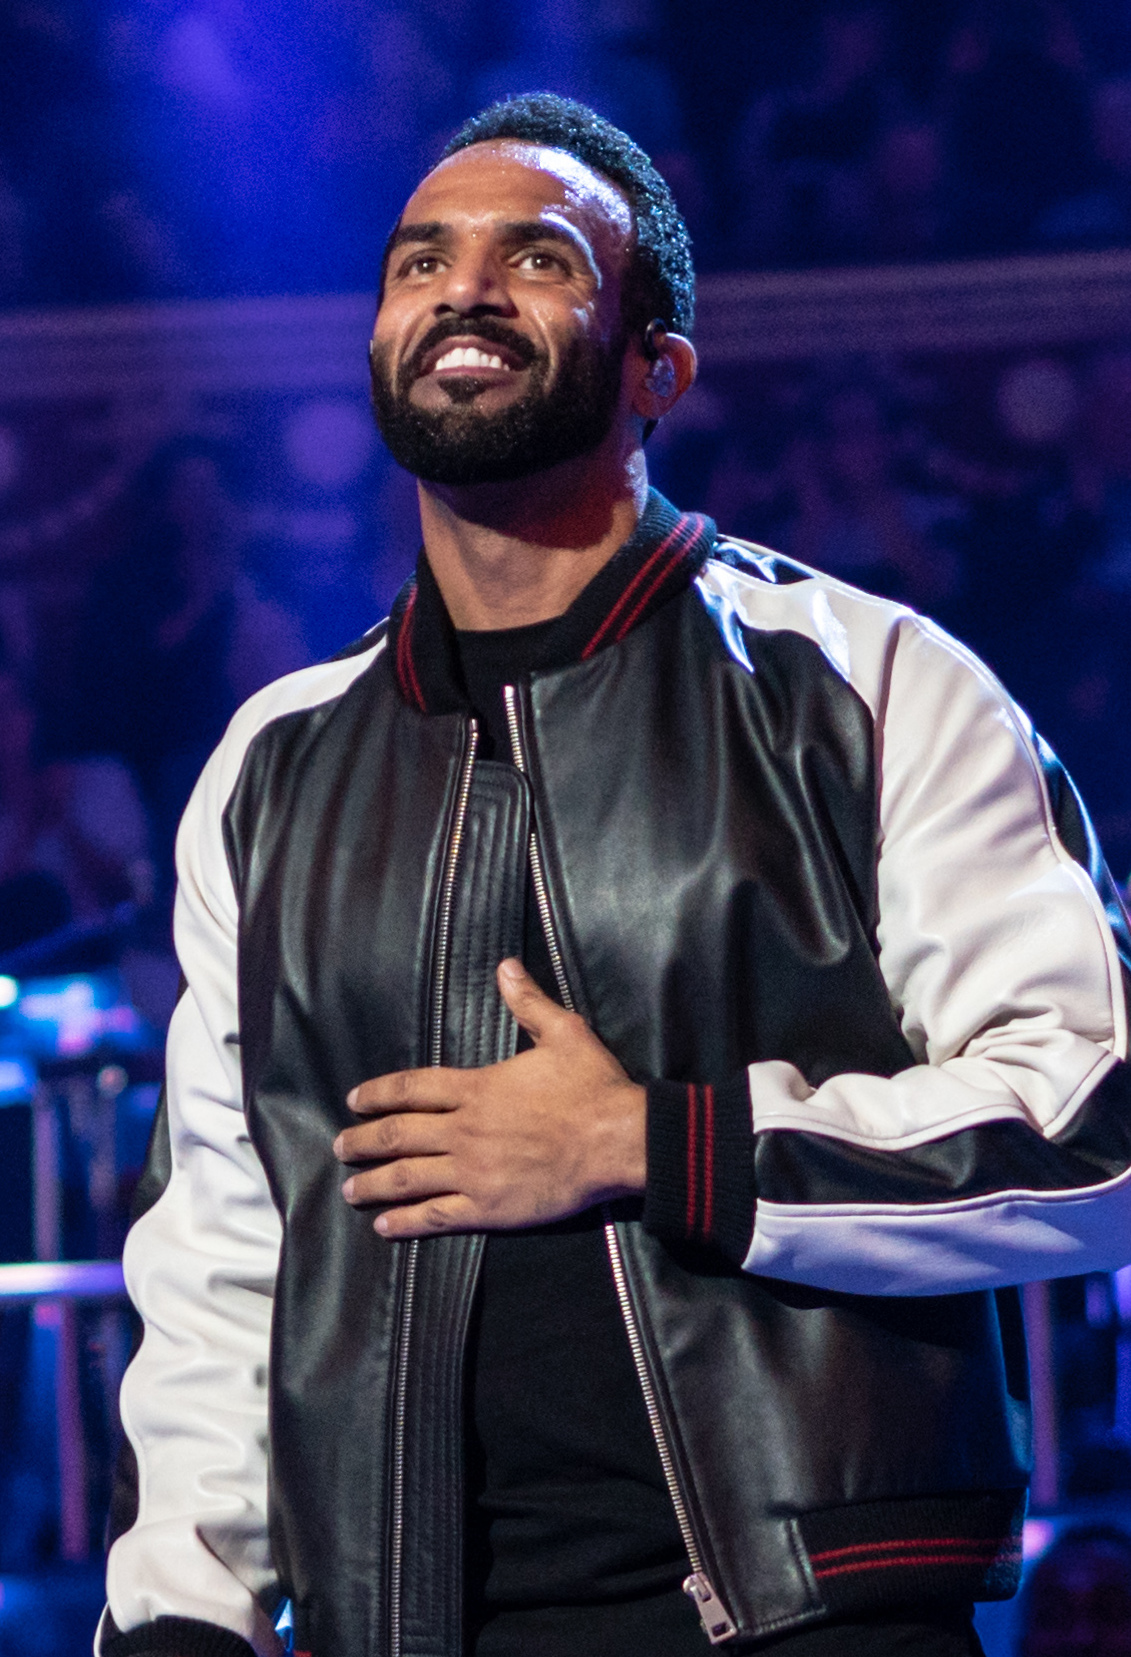 The 37-year old son of father George David and mother Tina Loftus Craig David in 2018 photo. Craig David earned a 3 million dollar salary - leaving the net worth at 15 million in 2018